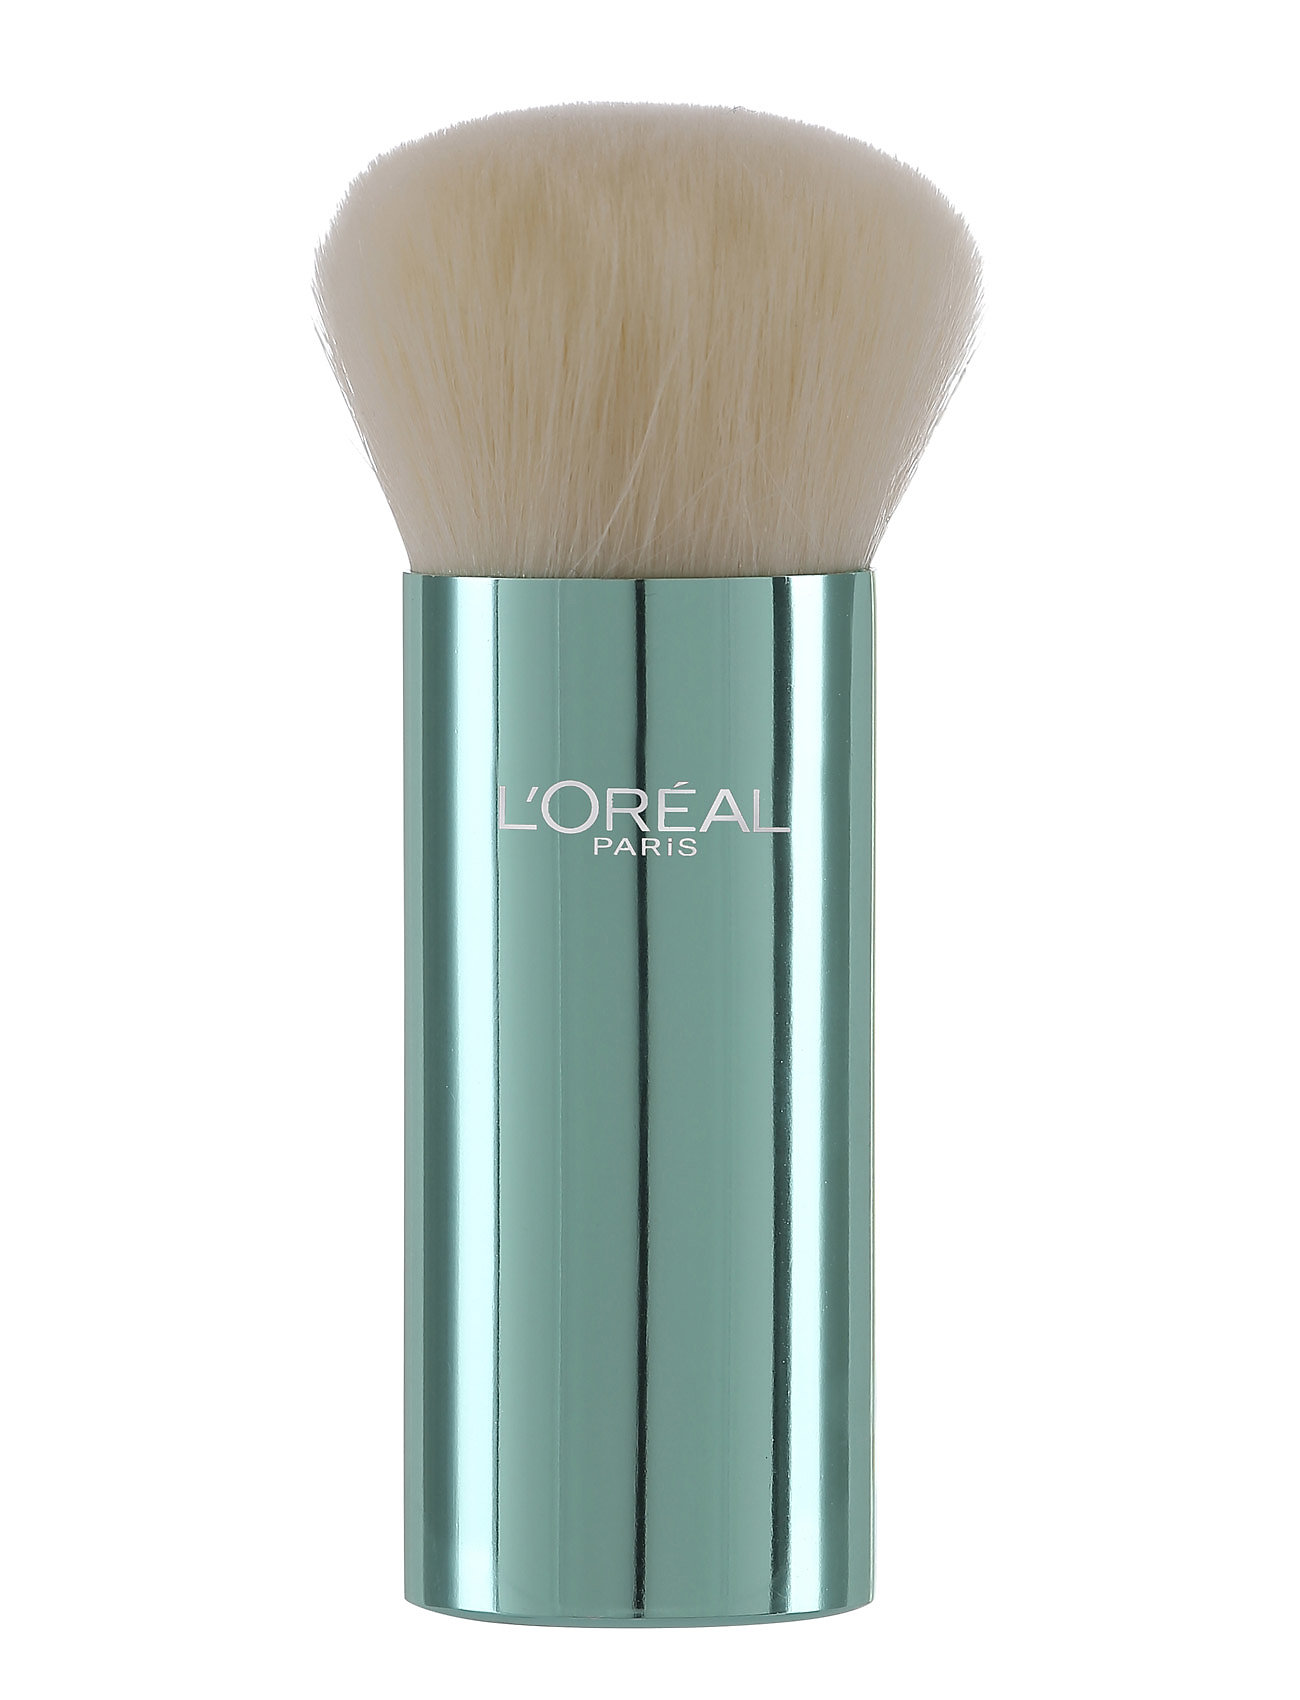 L'Oréal Paris True Match Minerals Powder Brush Smink